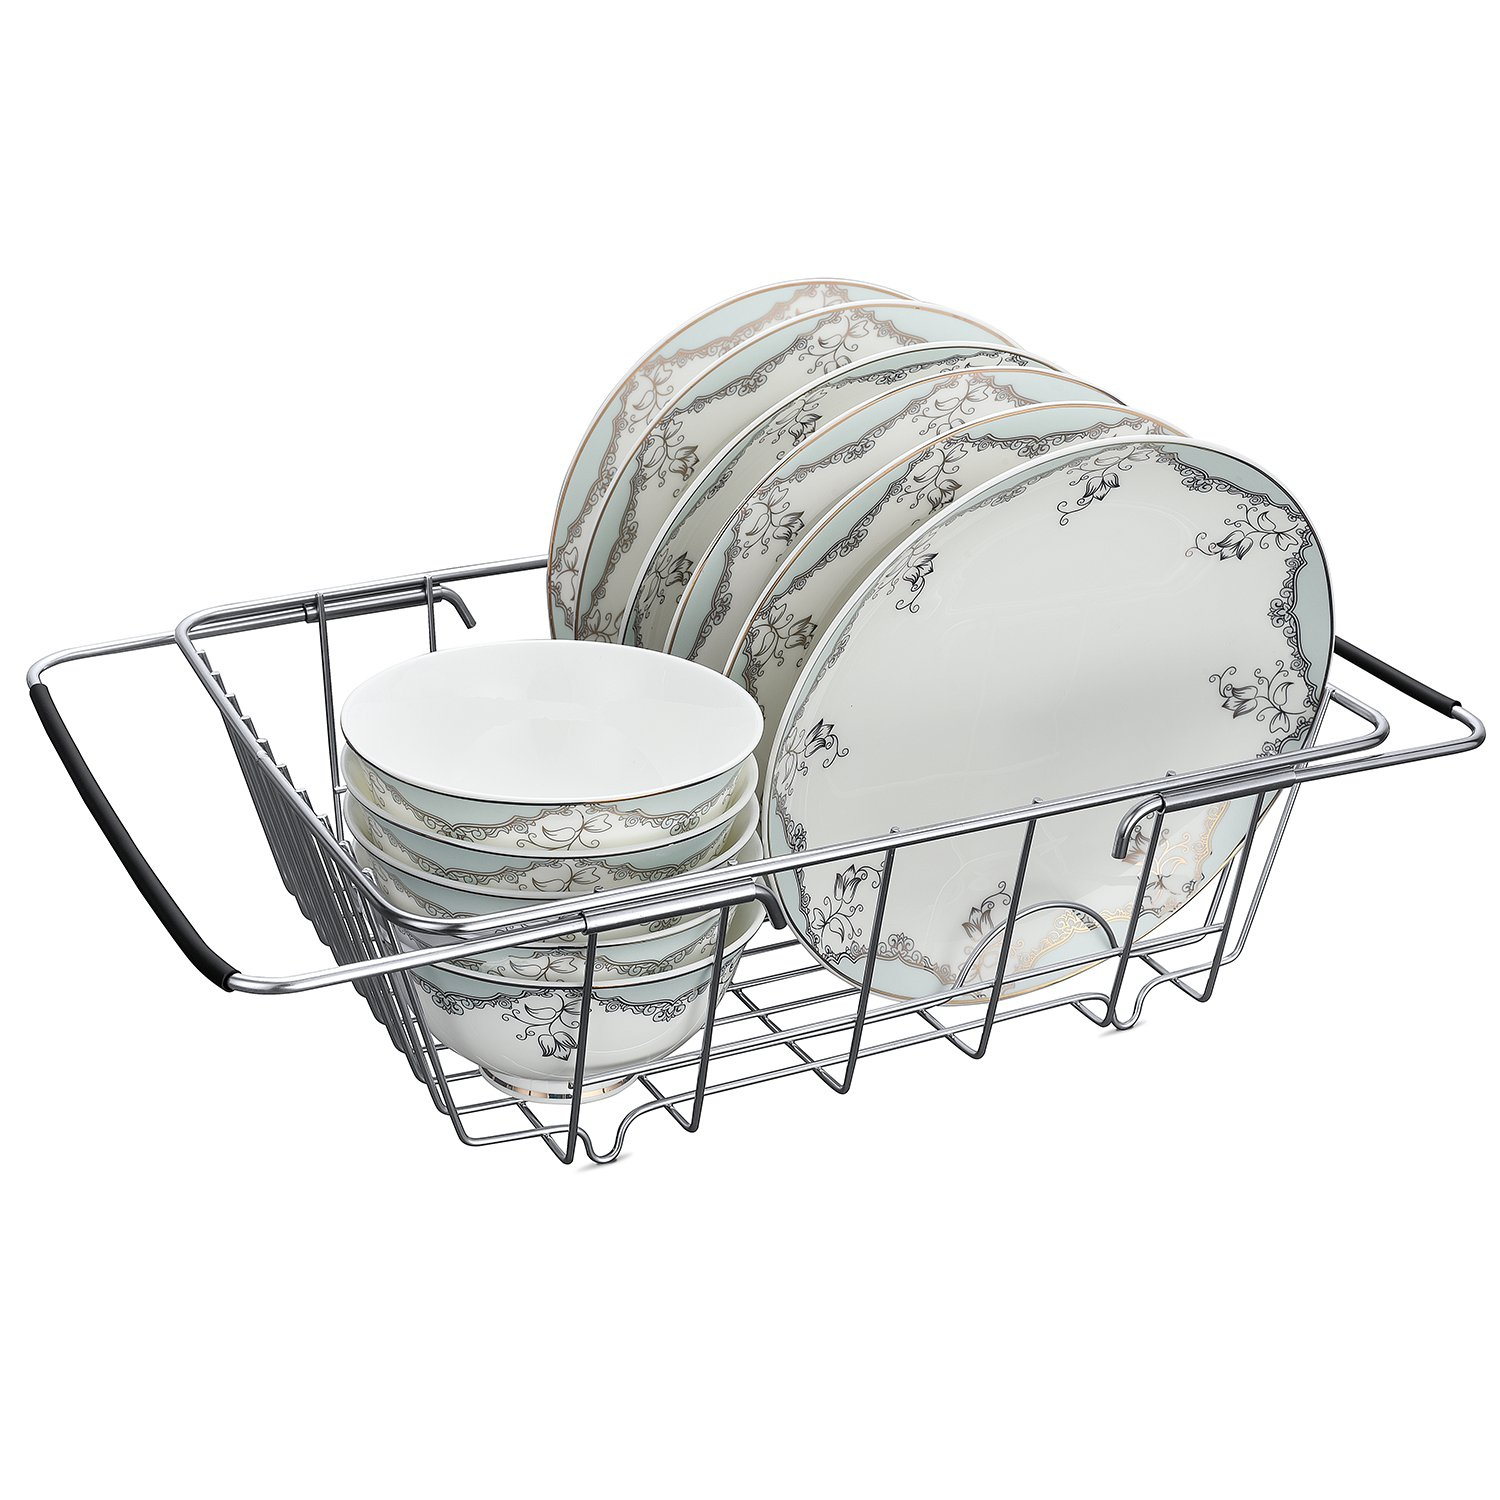 Black Friday Deals on In Sink Dish Rack have been announced